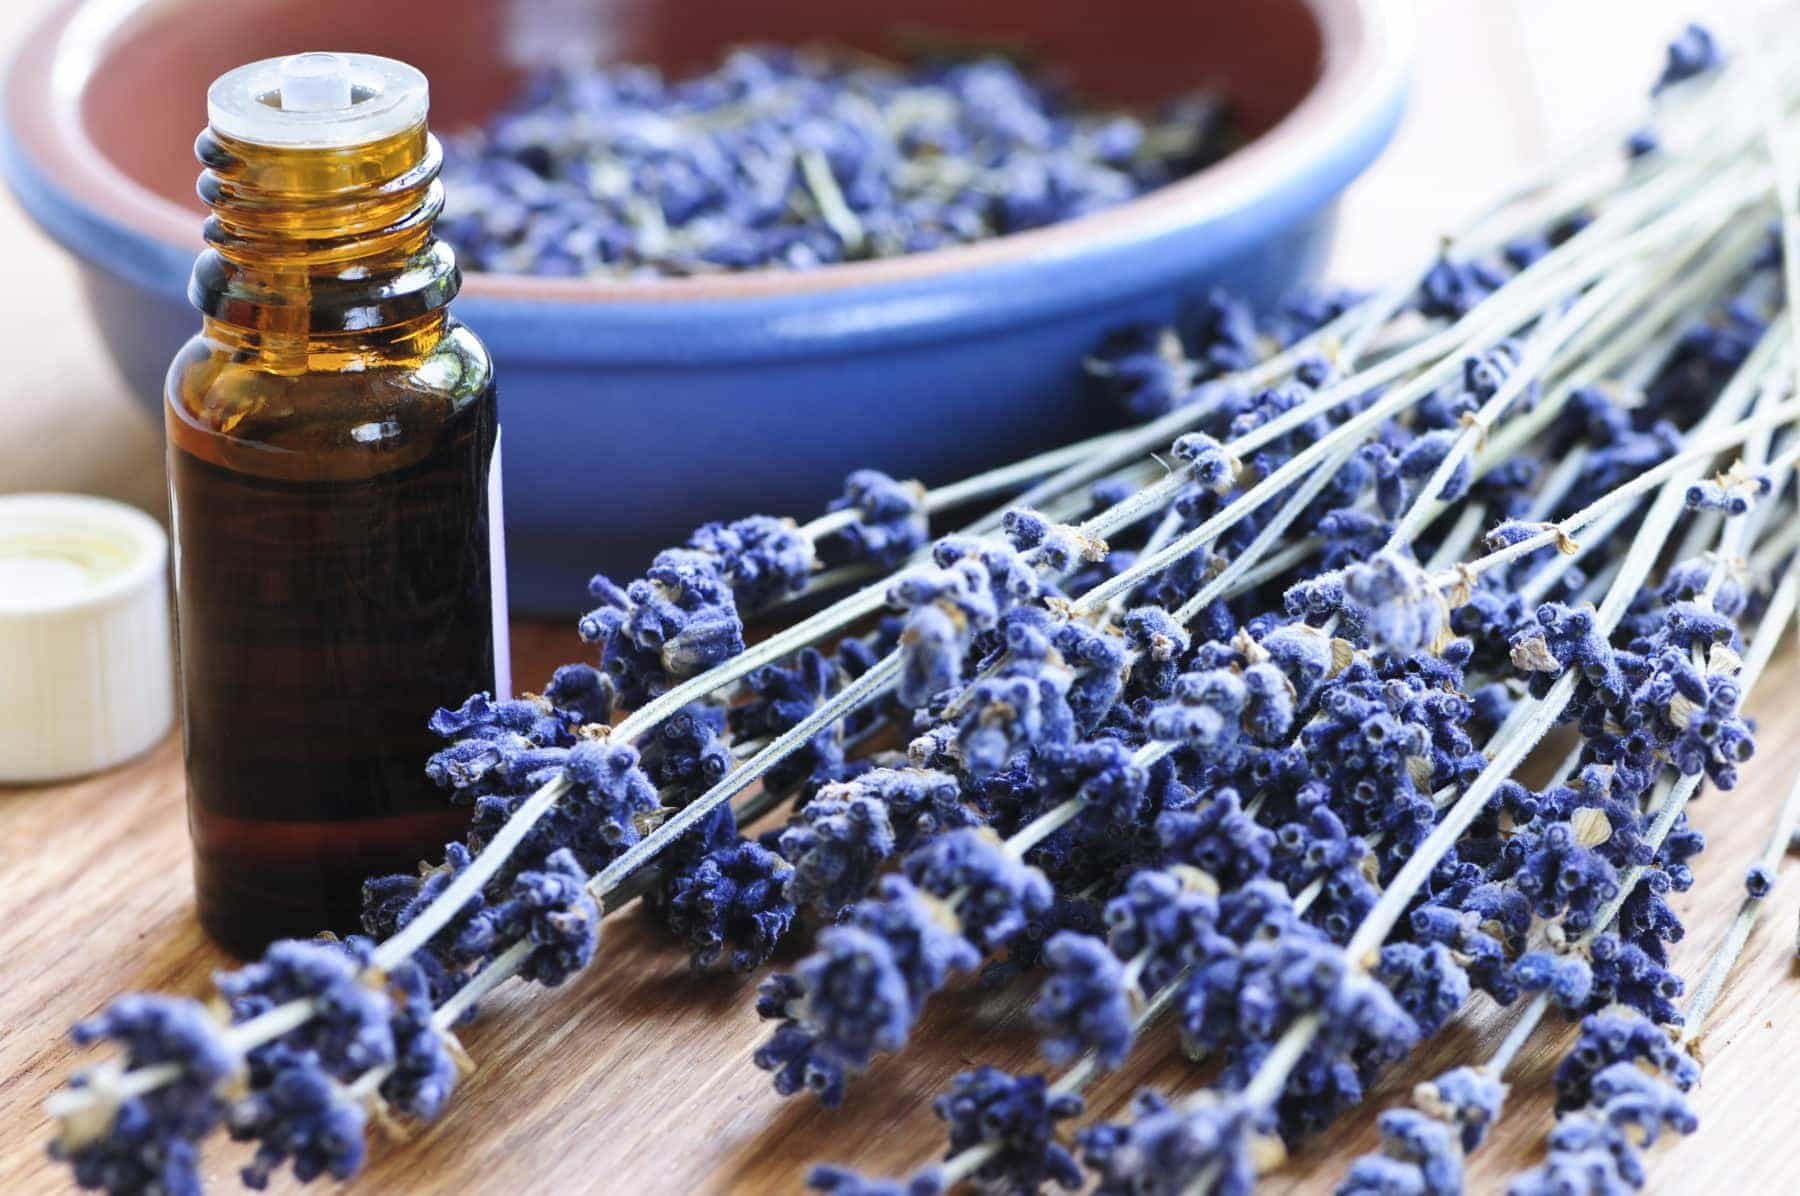 Lavender Essential Oils For Aromatherapy Massage At Le Petit Sanctuary, Taunton